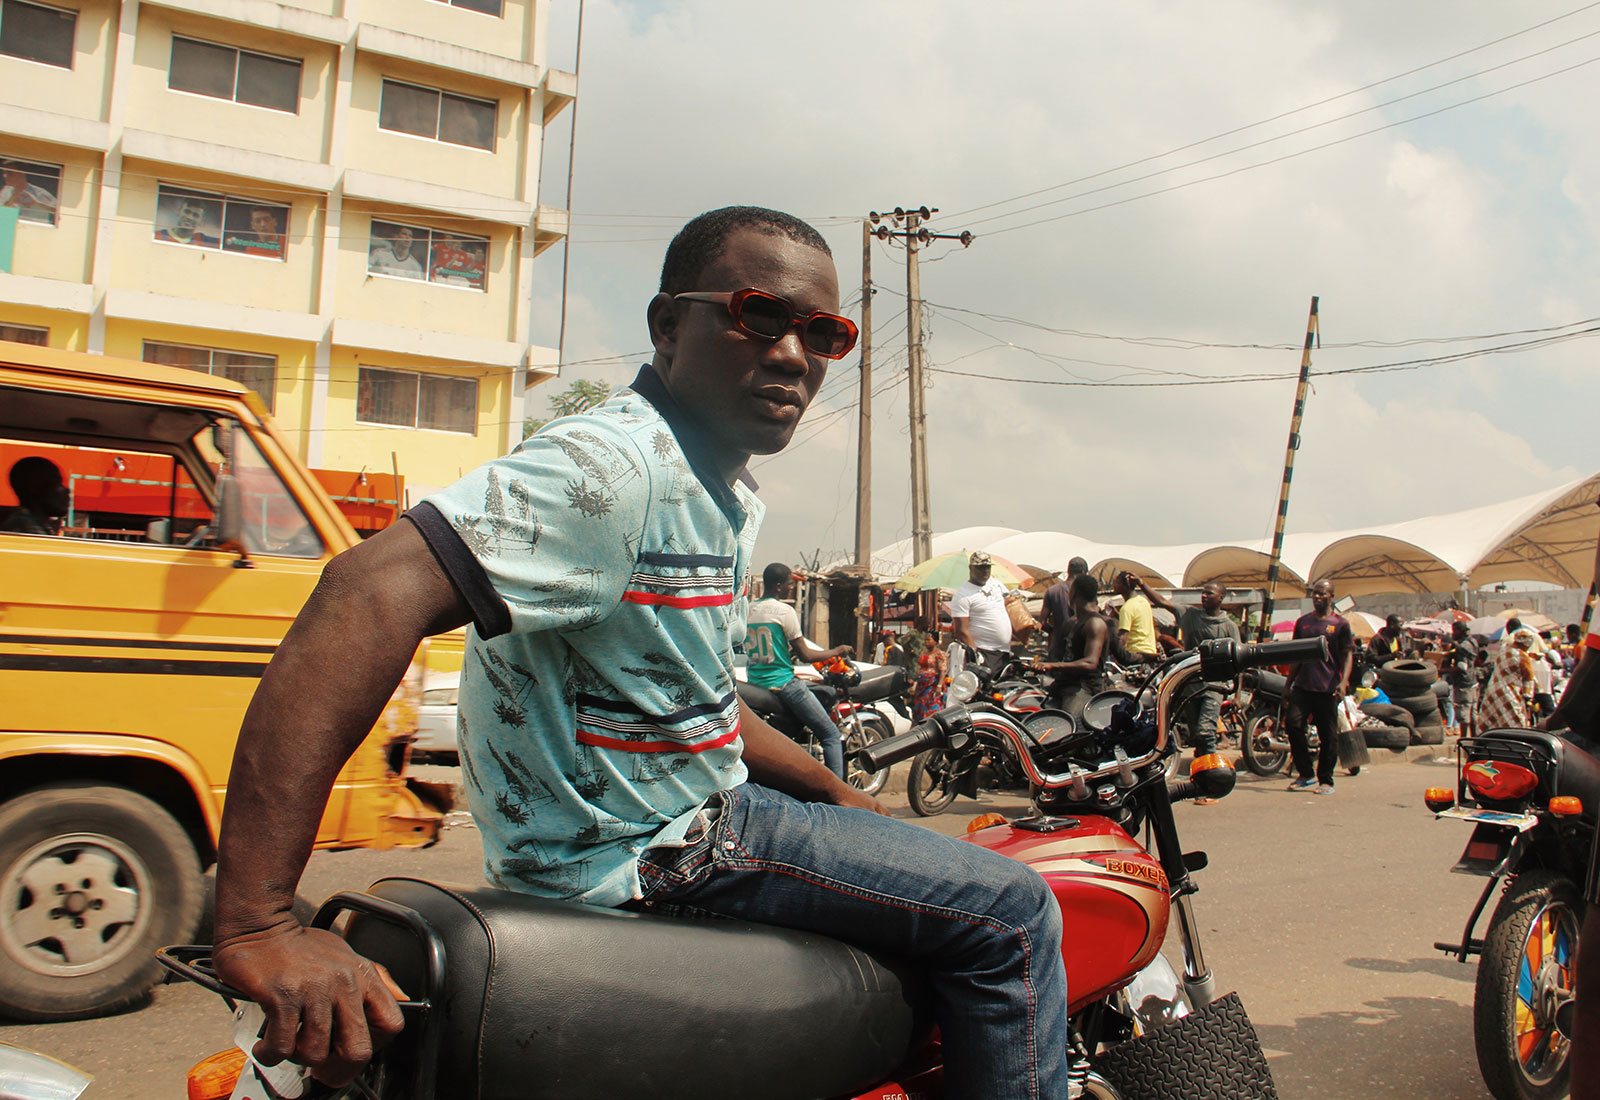 Nigeria's Okada Bikers Could Be the Freshest People on Earth